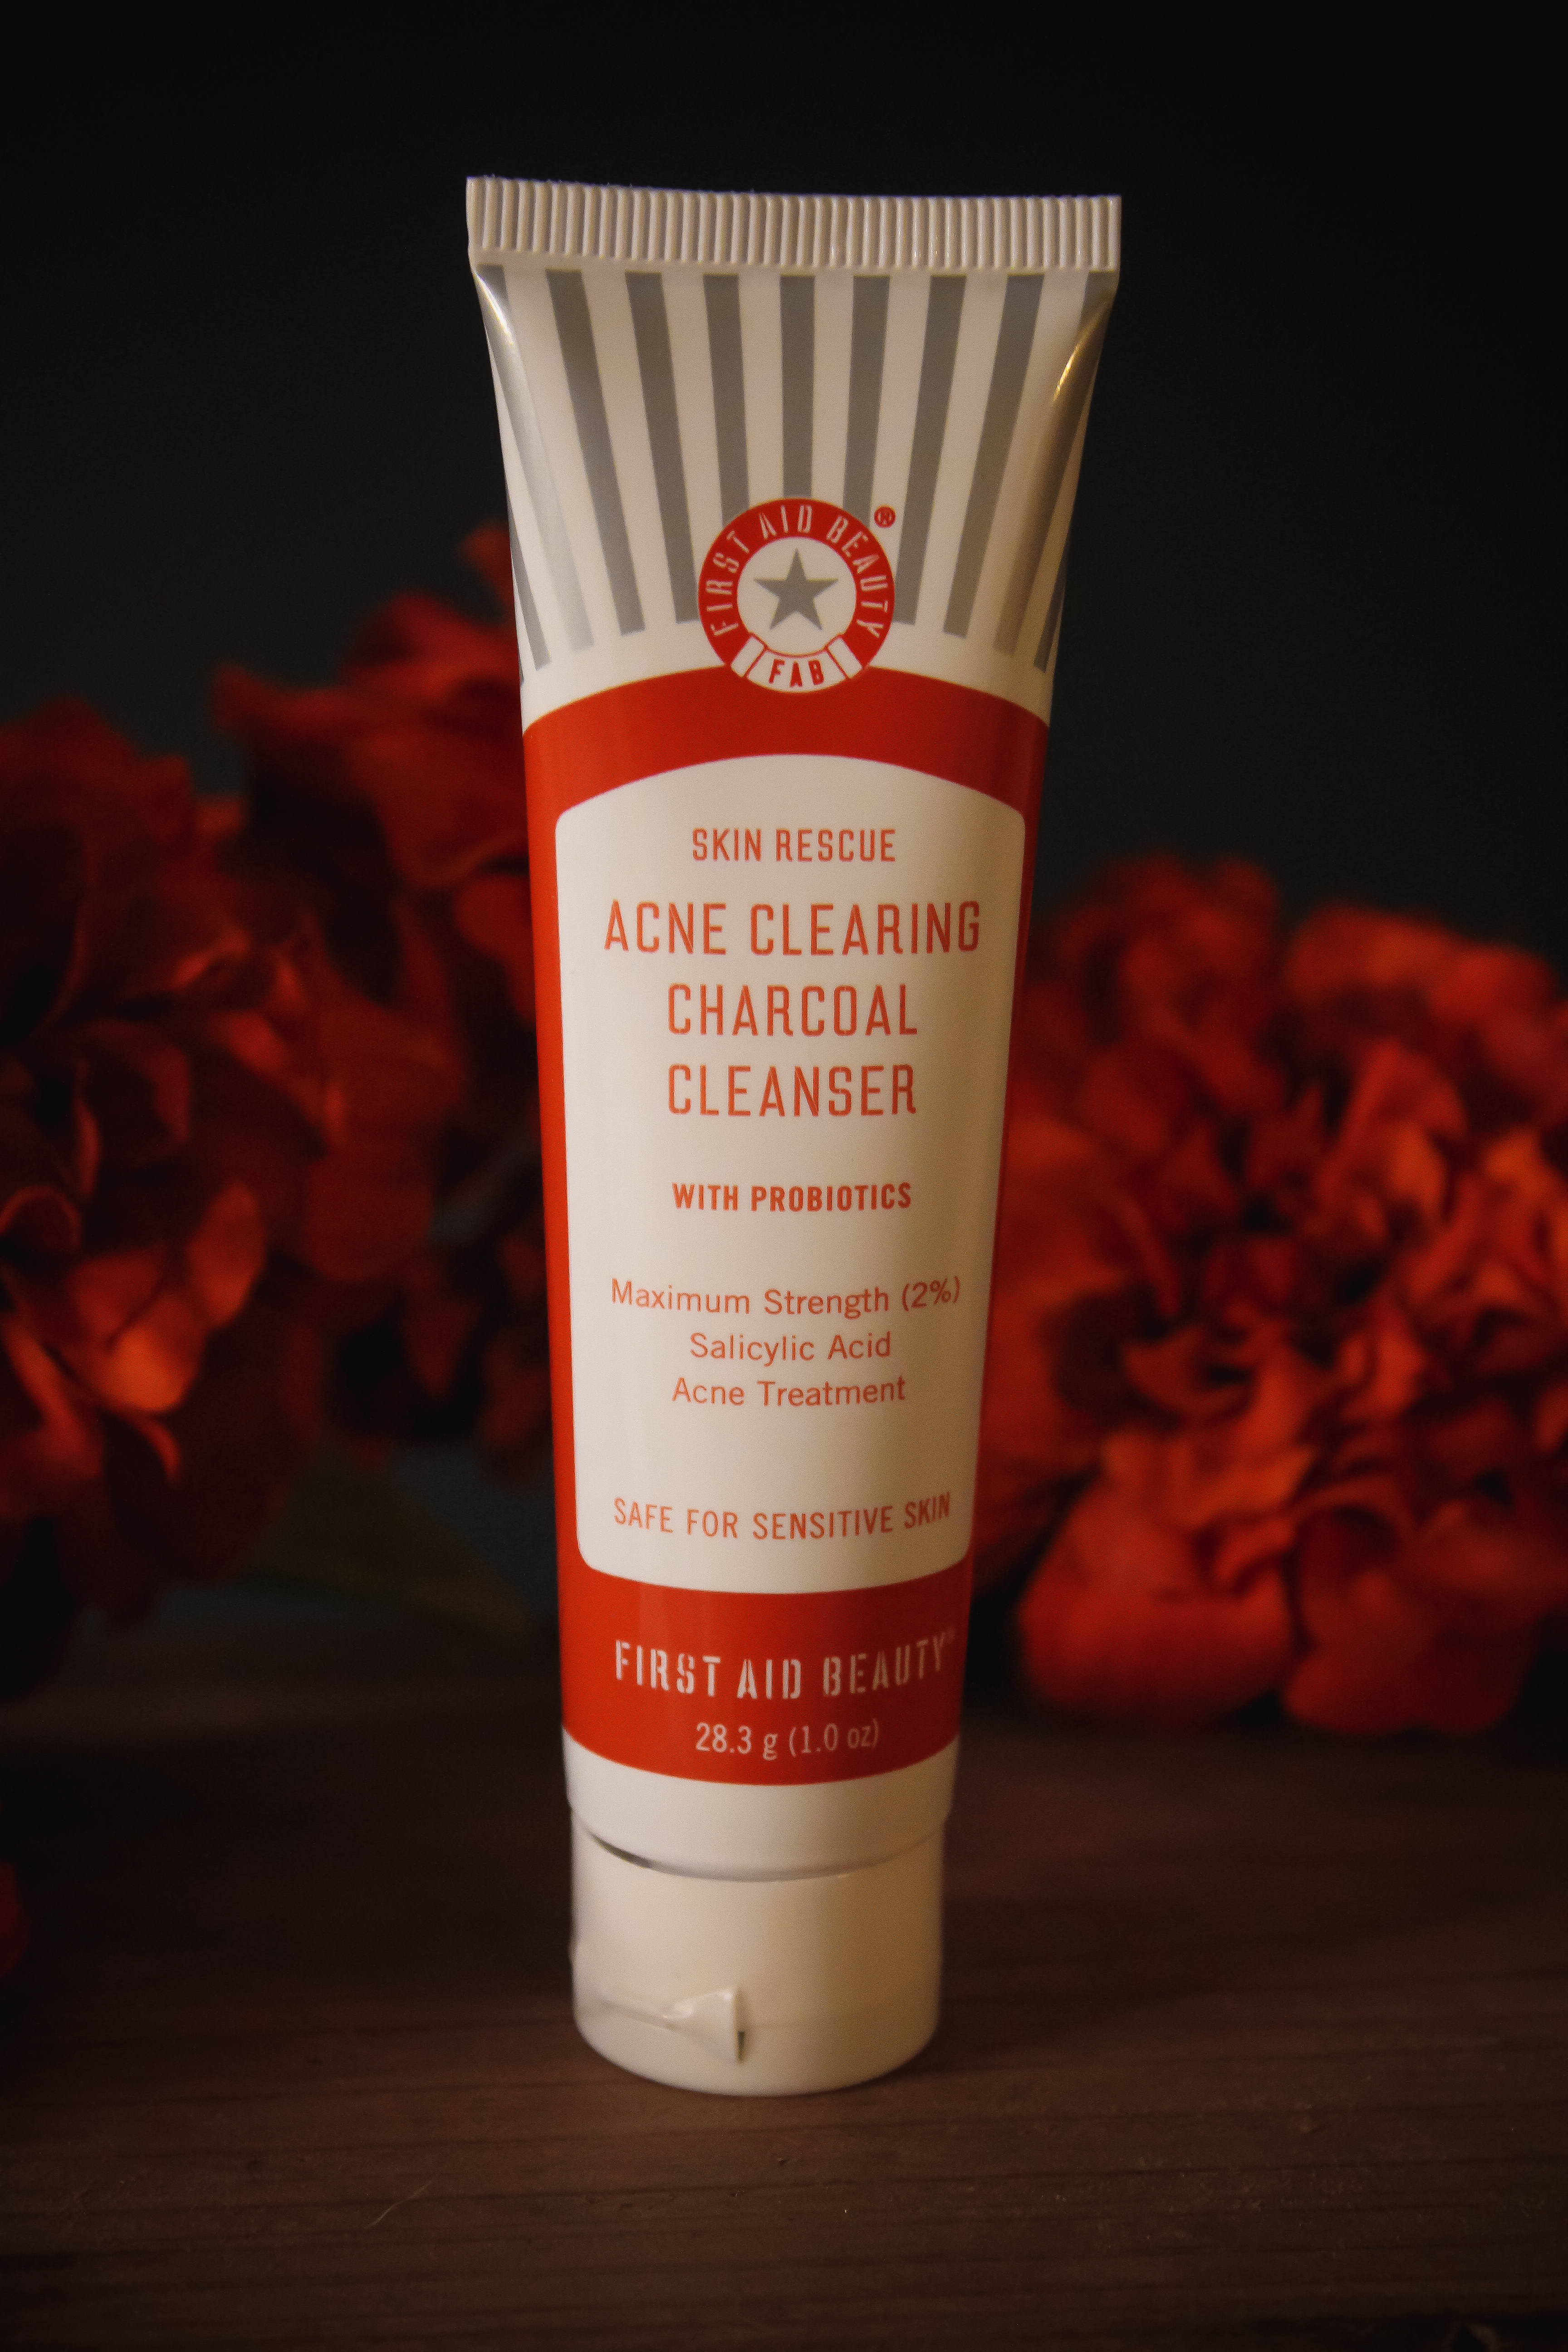 First Aid Beauty Skin Rescue Acne Clearing Charcoal Cleanser